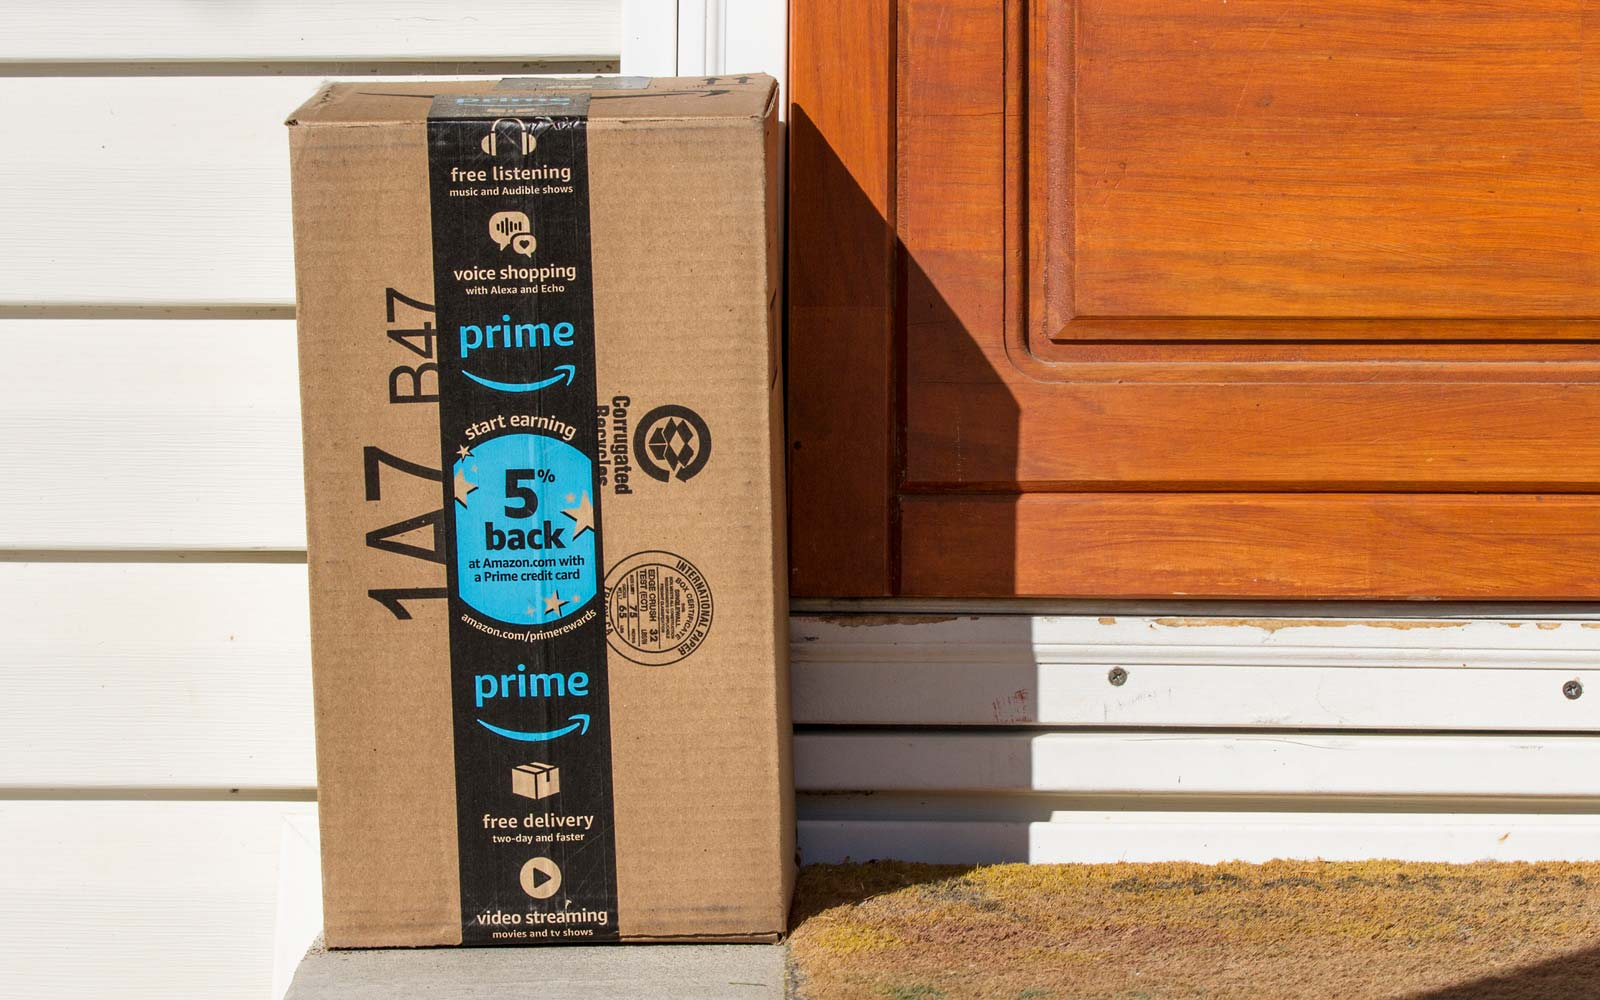 Amazon Could Soon Move From 2-day to 1-day Prime Shipping